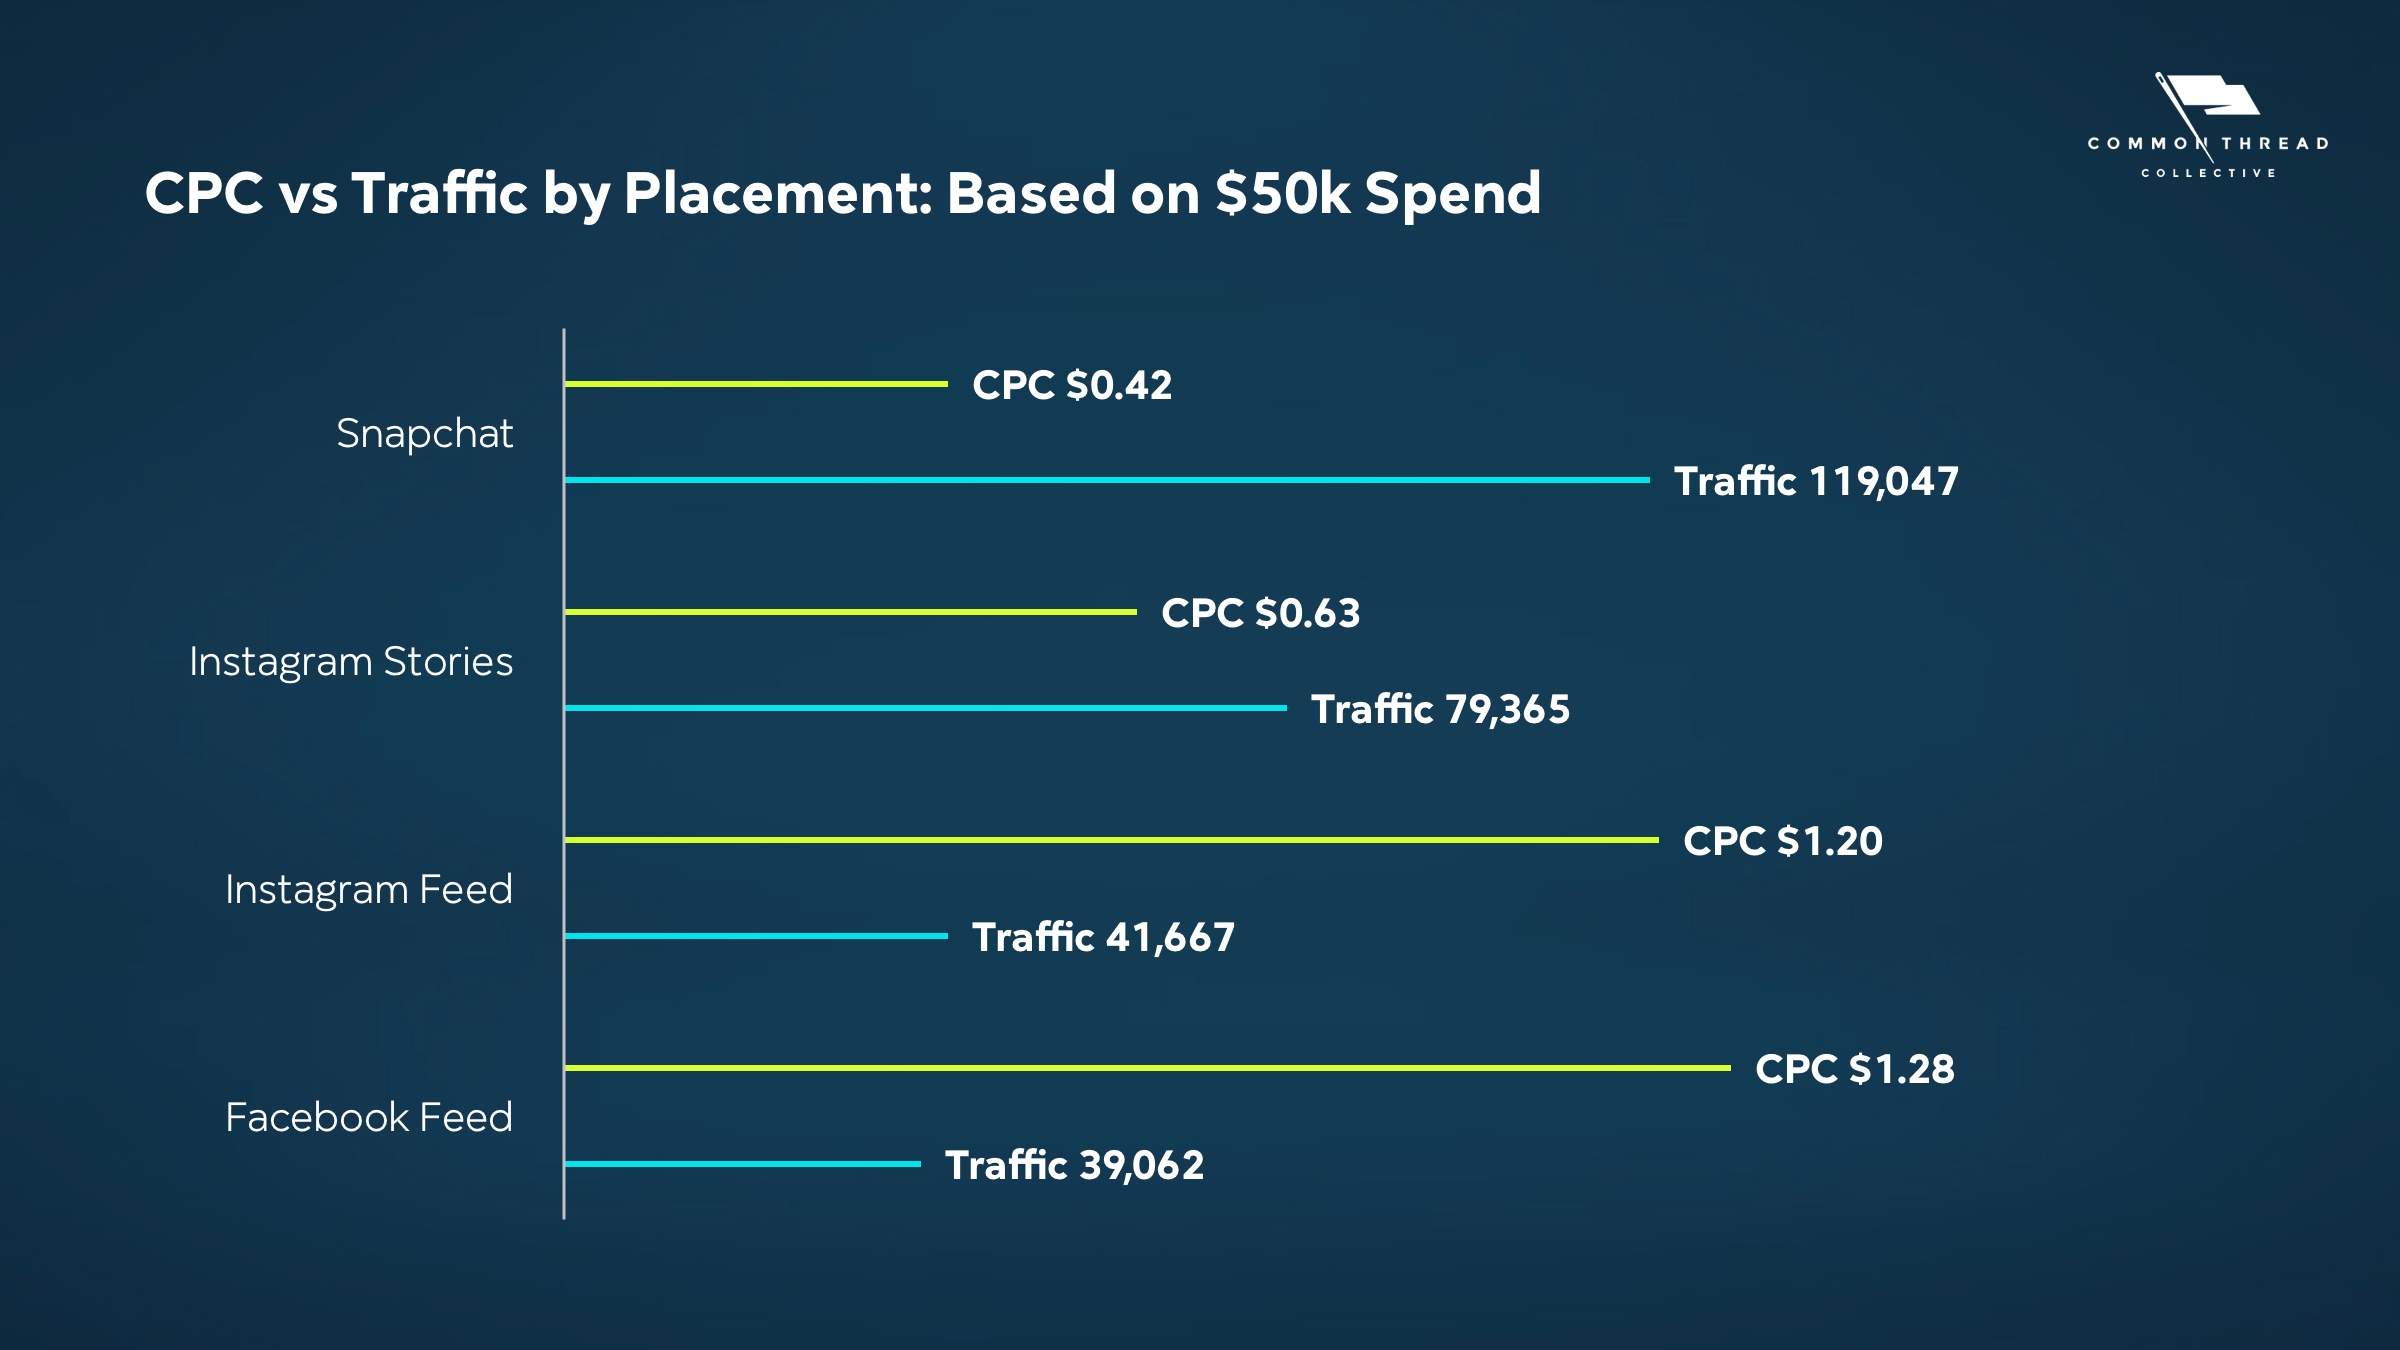 CPC vs Traffic by Placement Based on $50k Spend